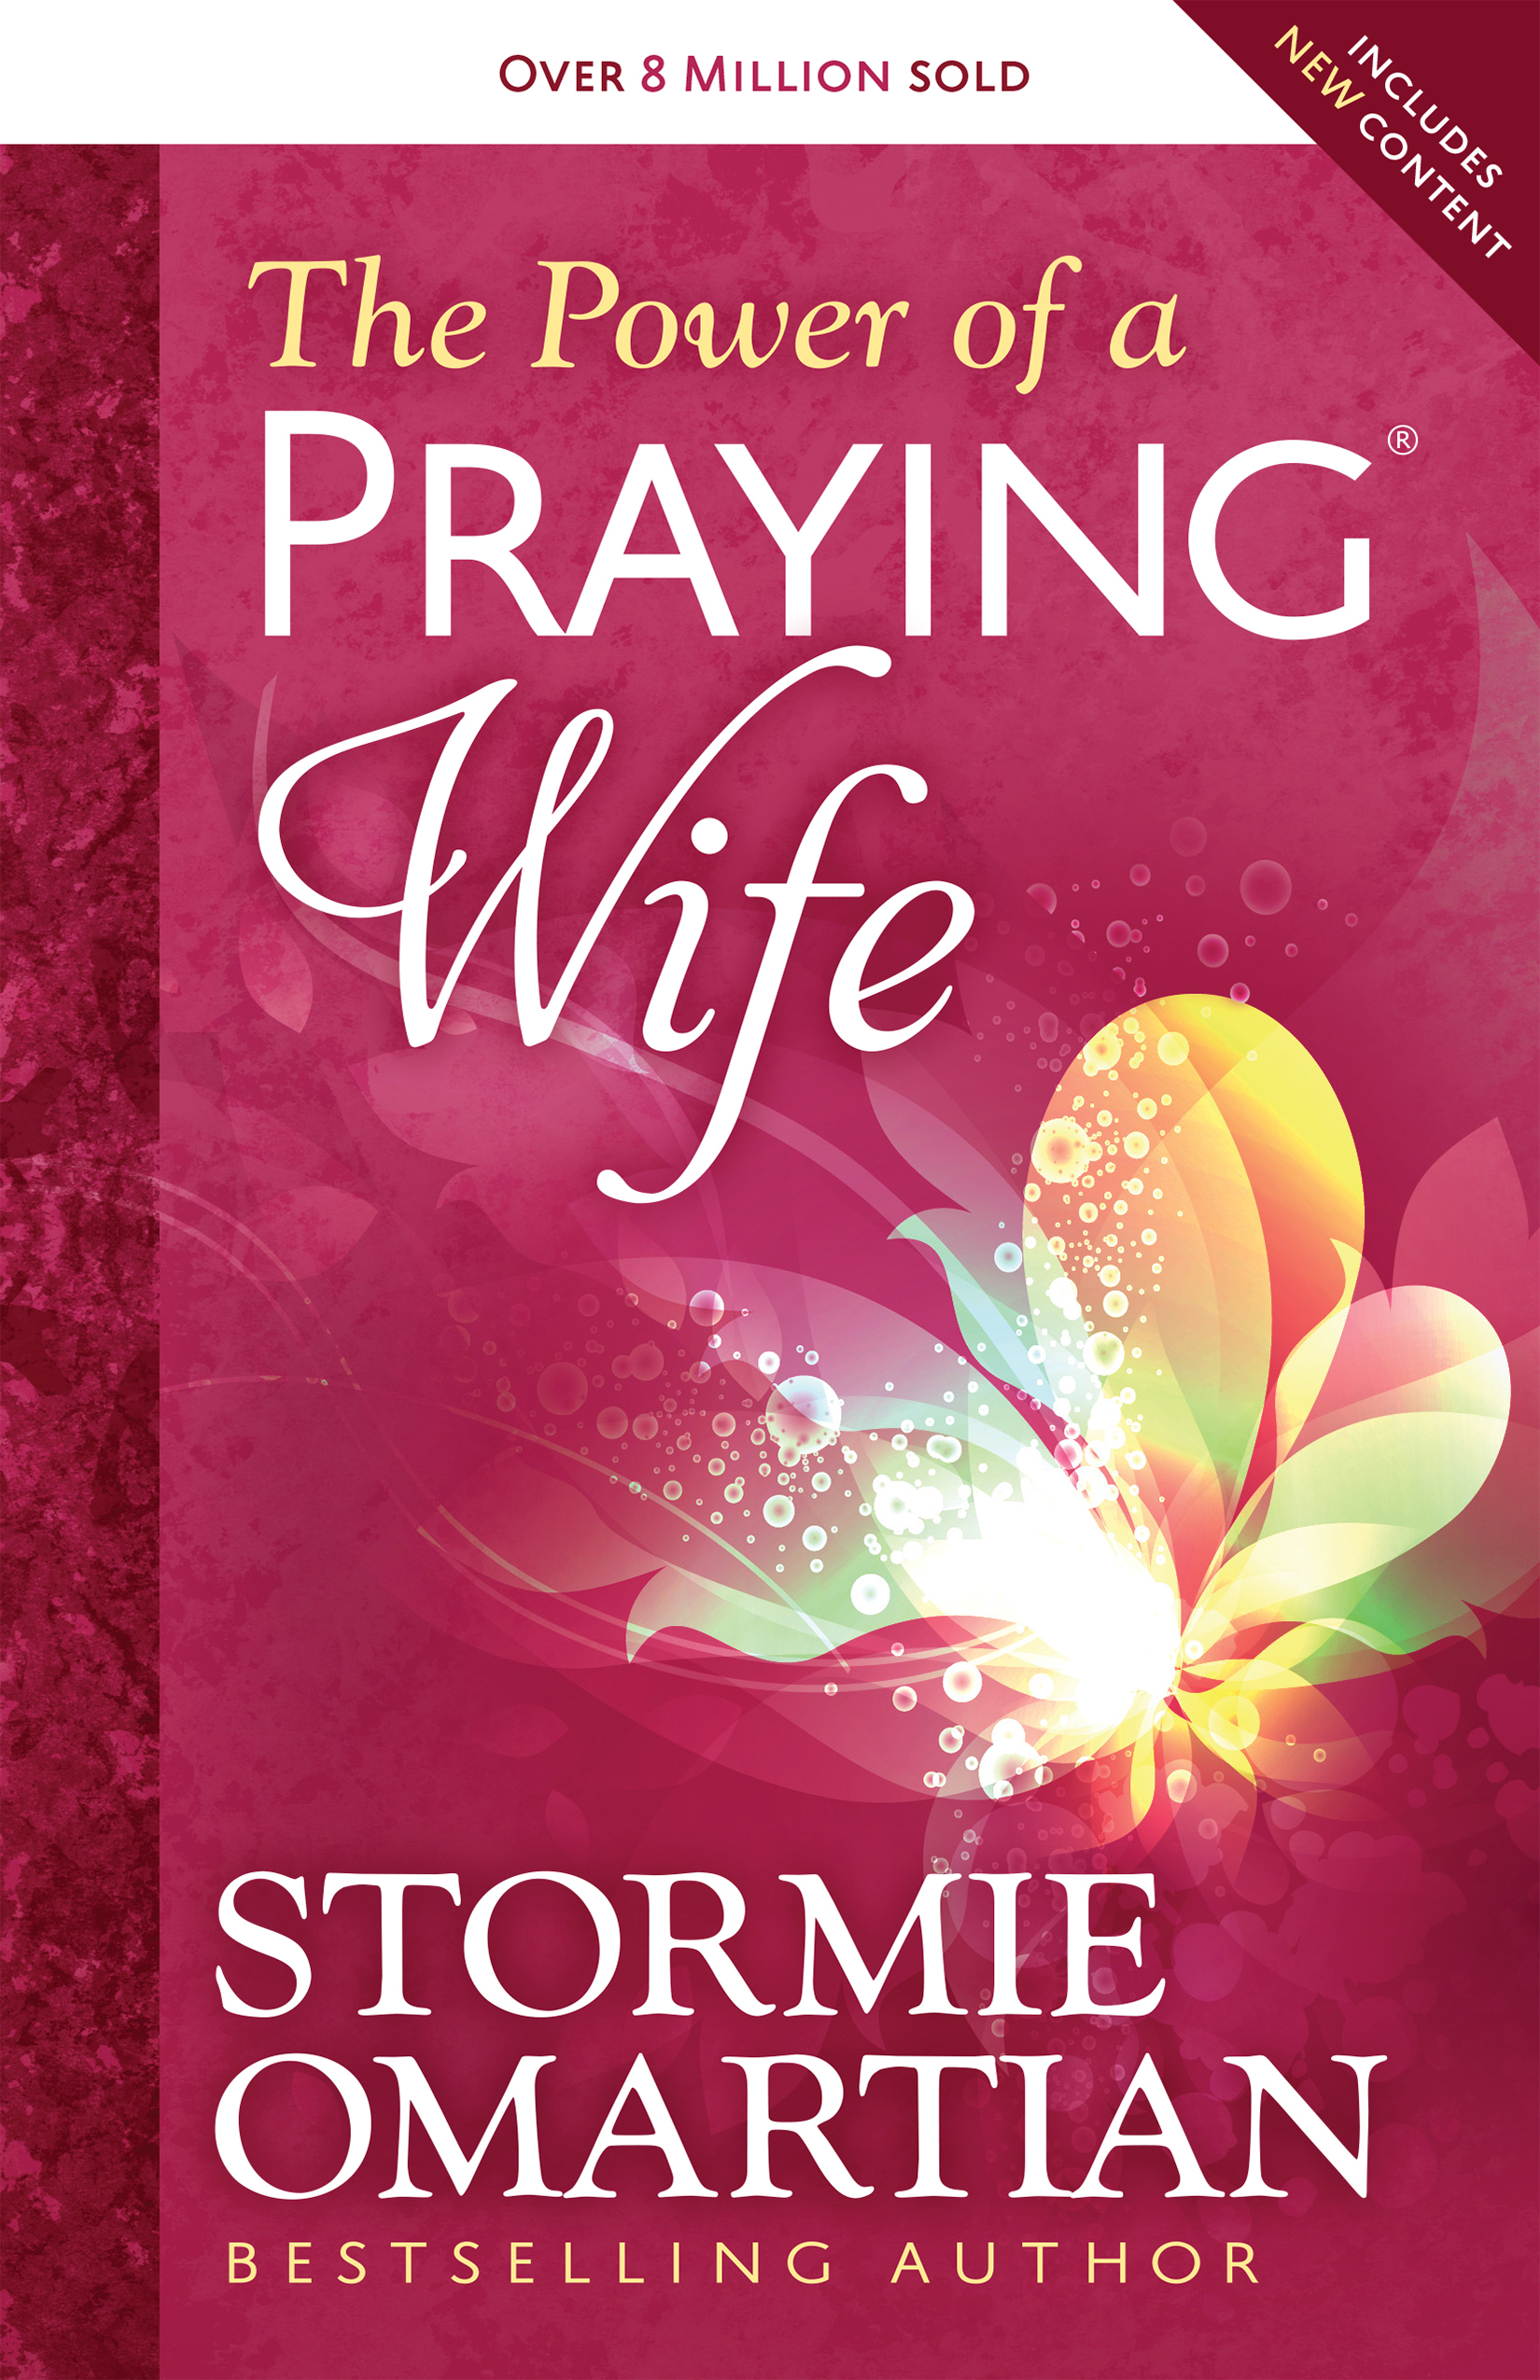 The Power of a Praying® WifeHarvest House